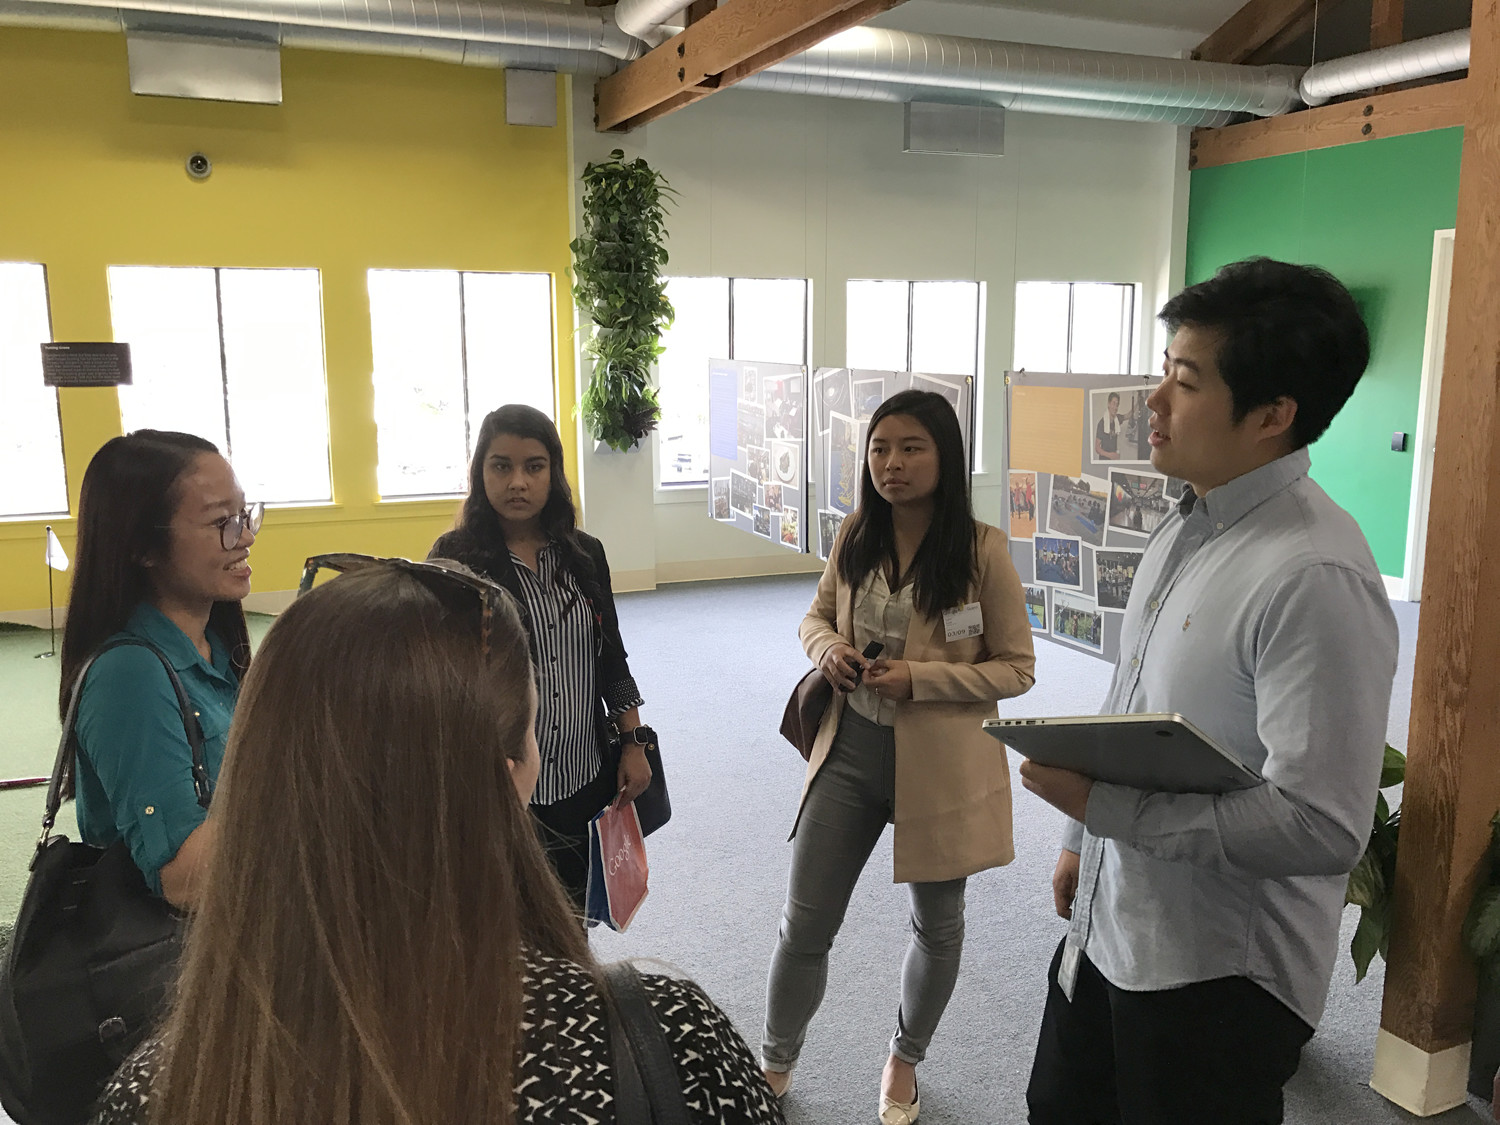 2012 graduate Jichao Li, right, now a software engineer at Google, showed students around the company's global headquarters in Mountain View, California. (Photo courtesy of Ryan Wright)